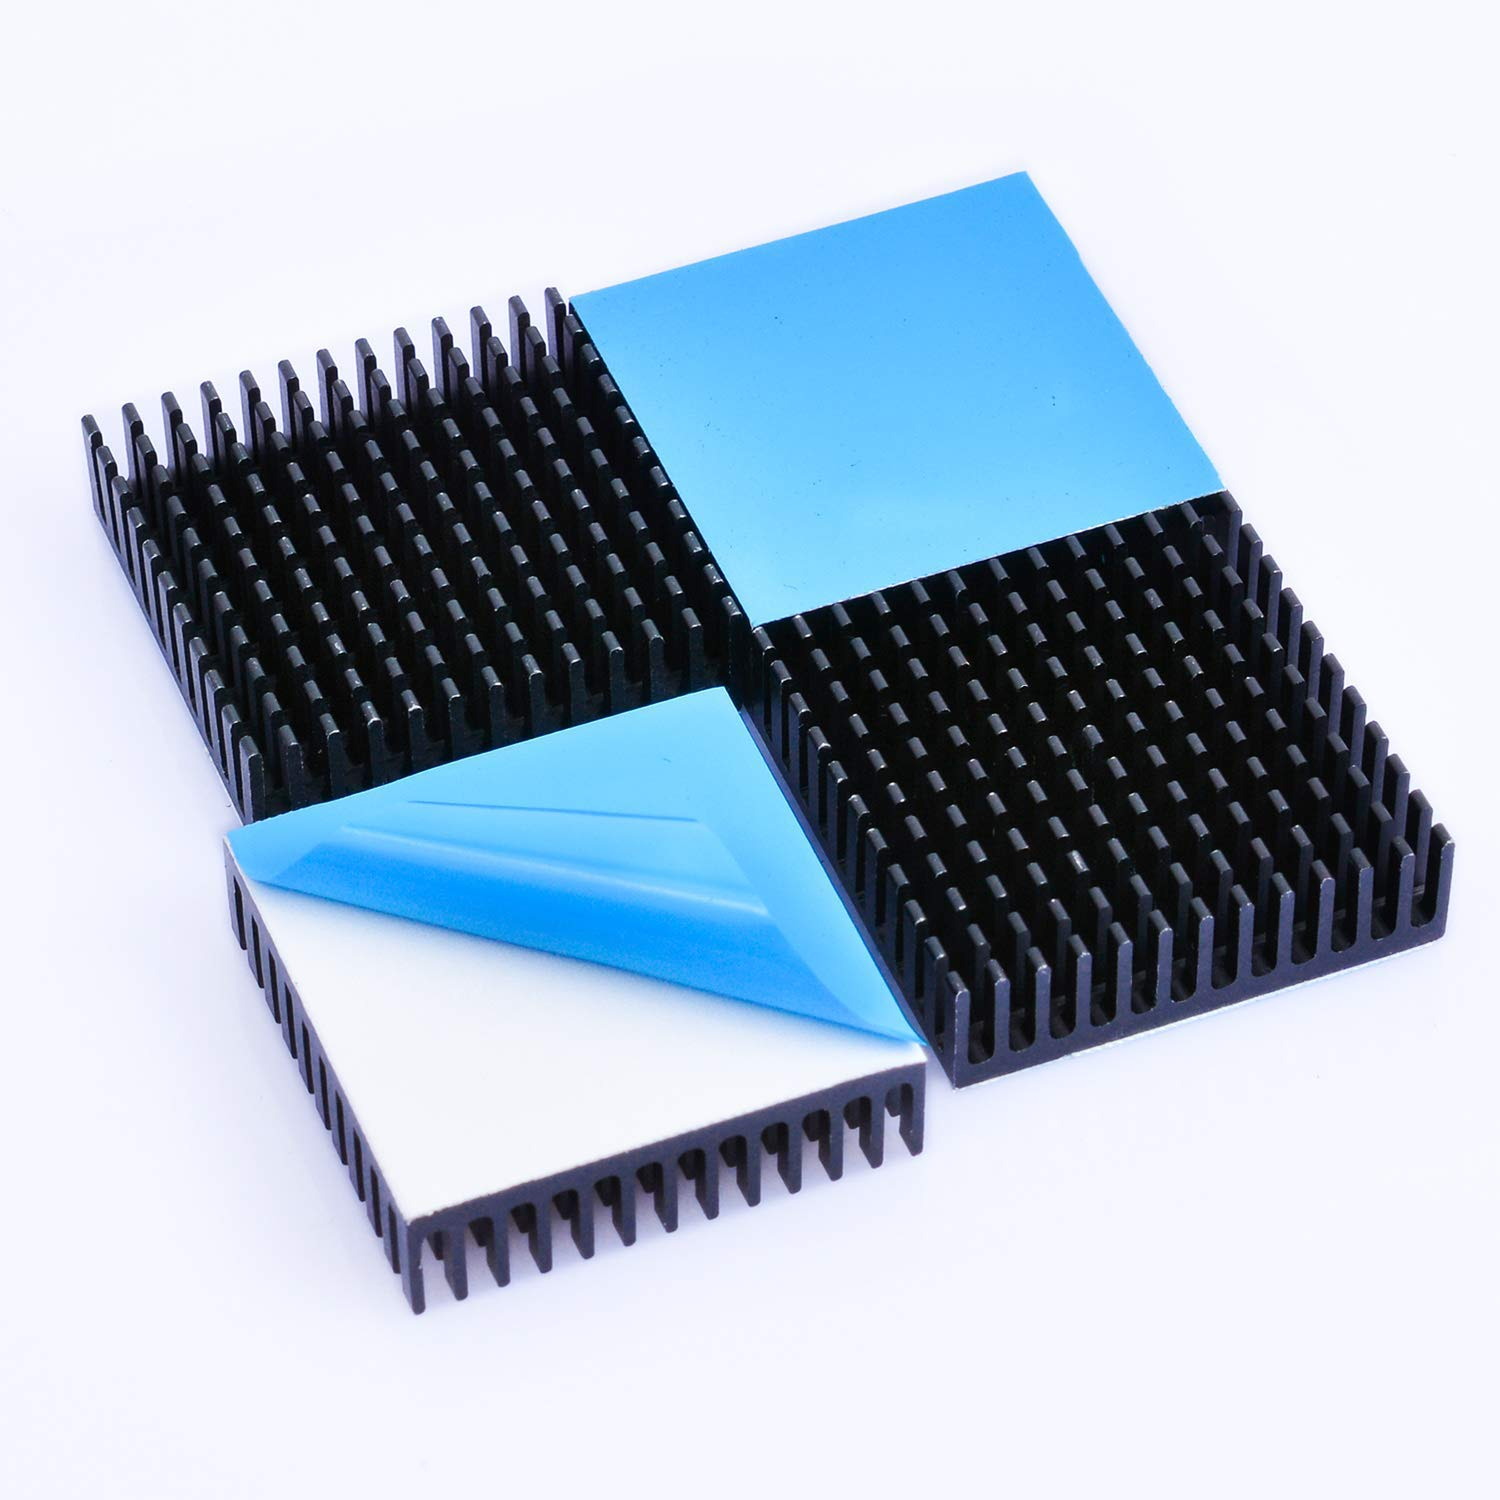 Easycargo 4pcs 40mm Heatsink Kit 40x40x11mm + 3M 8810 Thermal Conductive Adhesive Tape, Cooler Heat Sink for Cooling 3D Printers, TEC1-12706 Thermoelectric Peltier Cooler 40mmx40mmx11mm